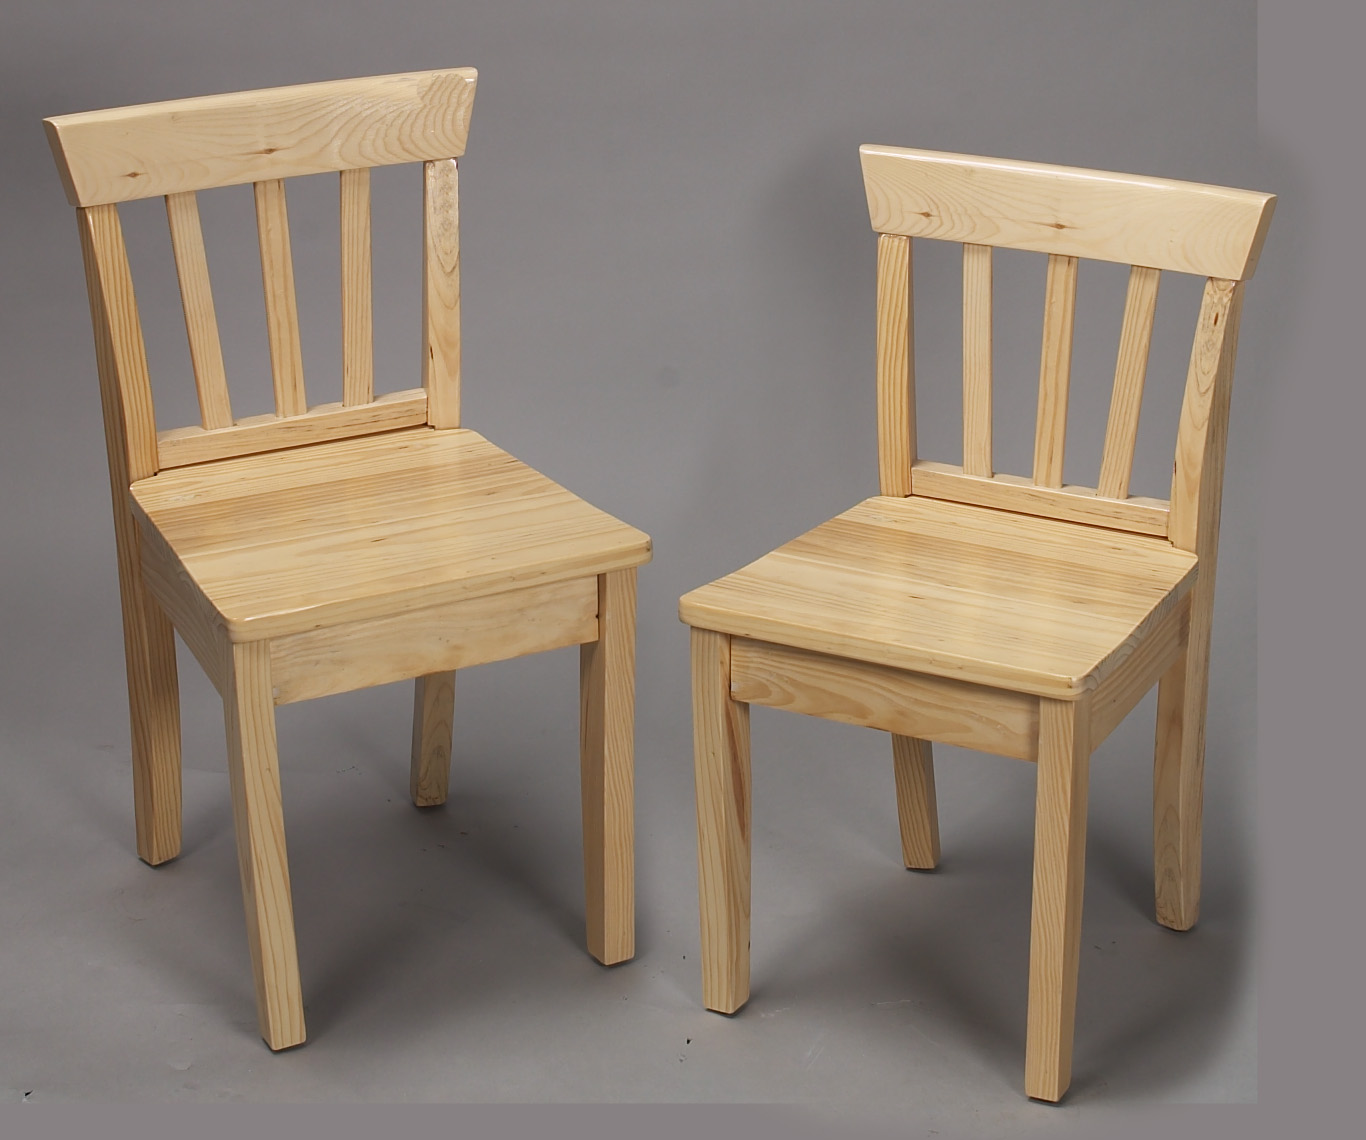 Giftmark 4530N Solid Wood 2 Chair Set Natural Extra Chairs to go with 4525N Set